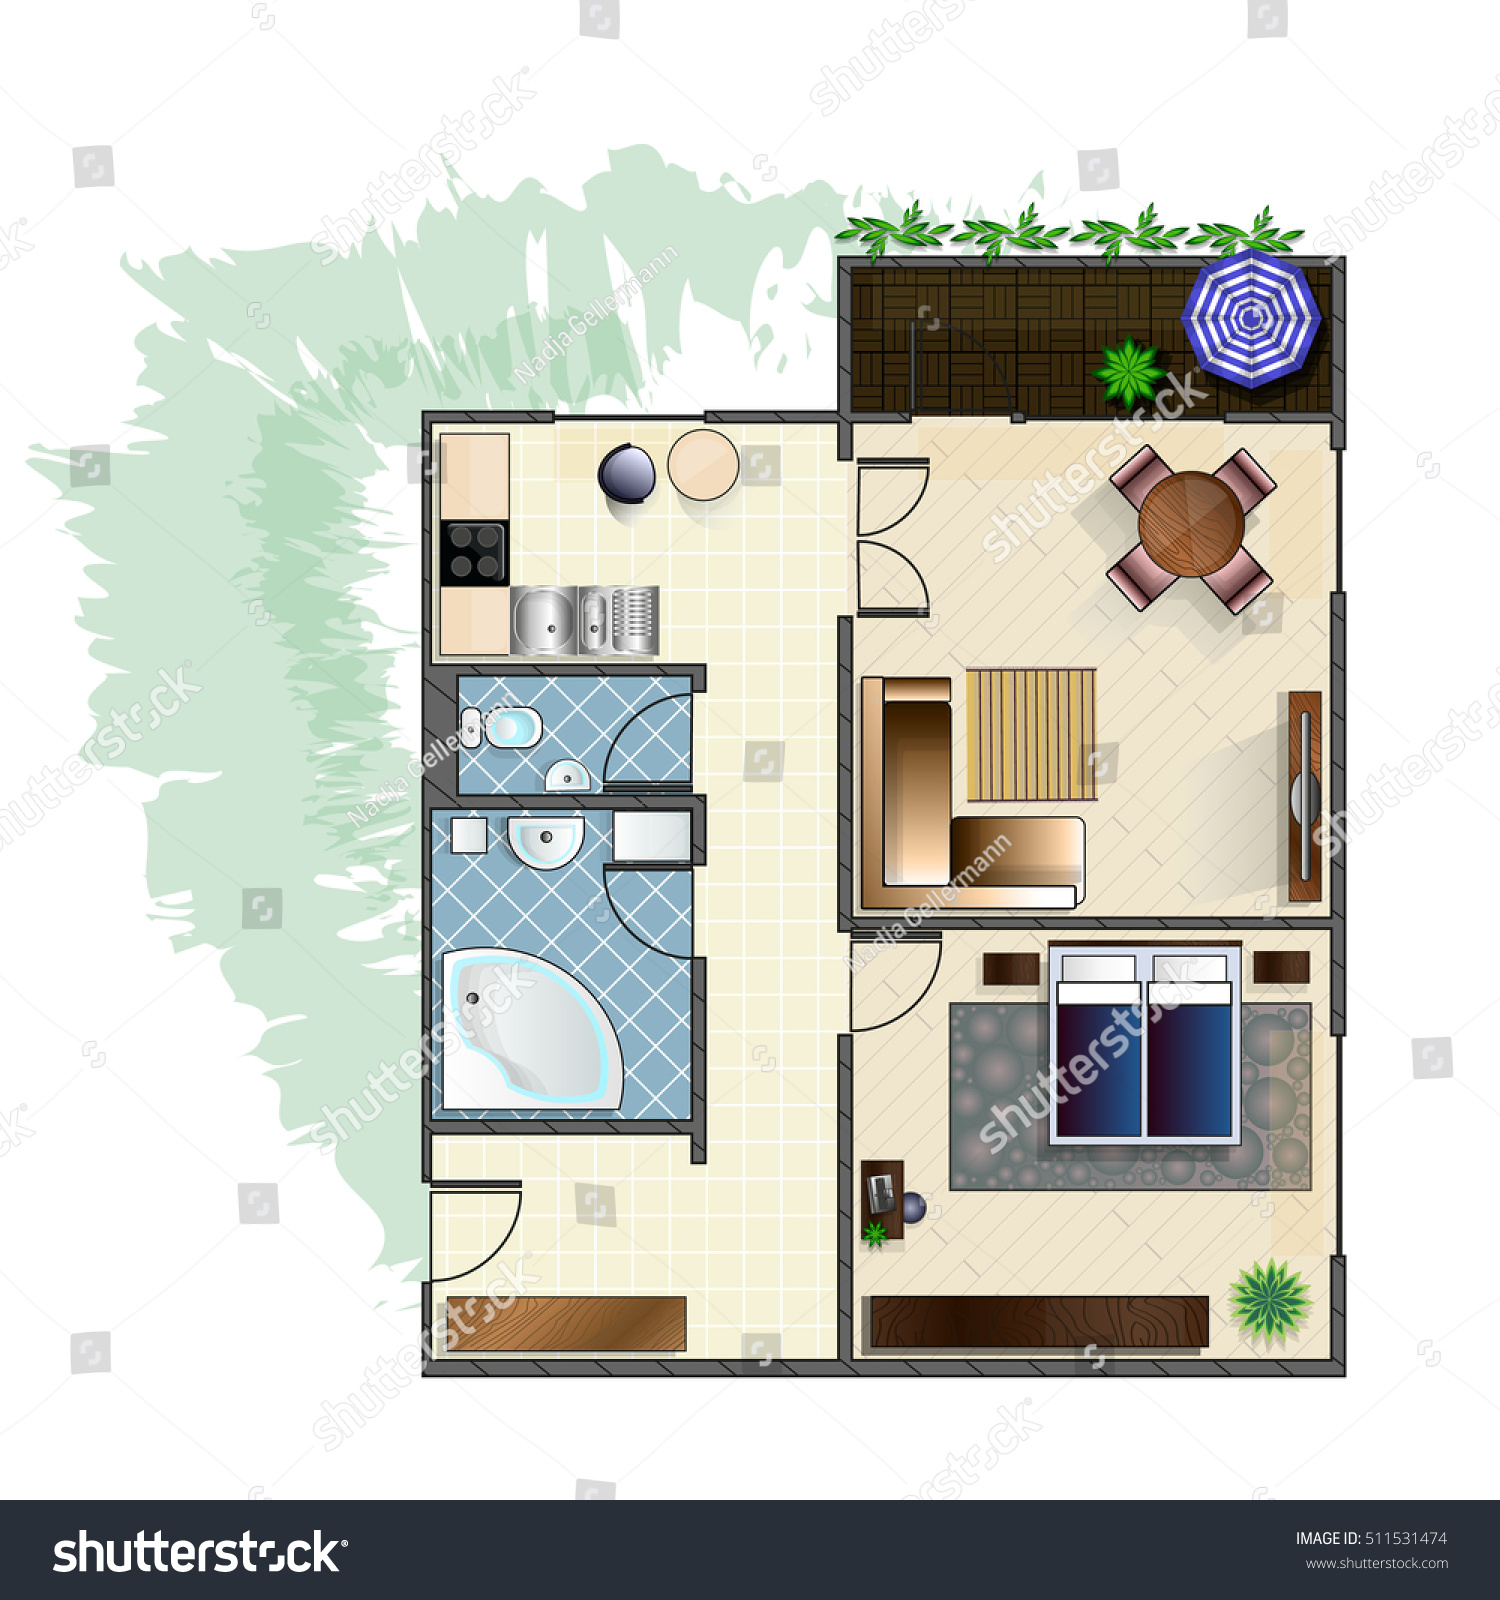 Architecture Plan Furniture Top View 2rooms Stock Vector